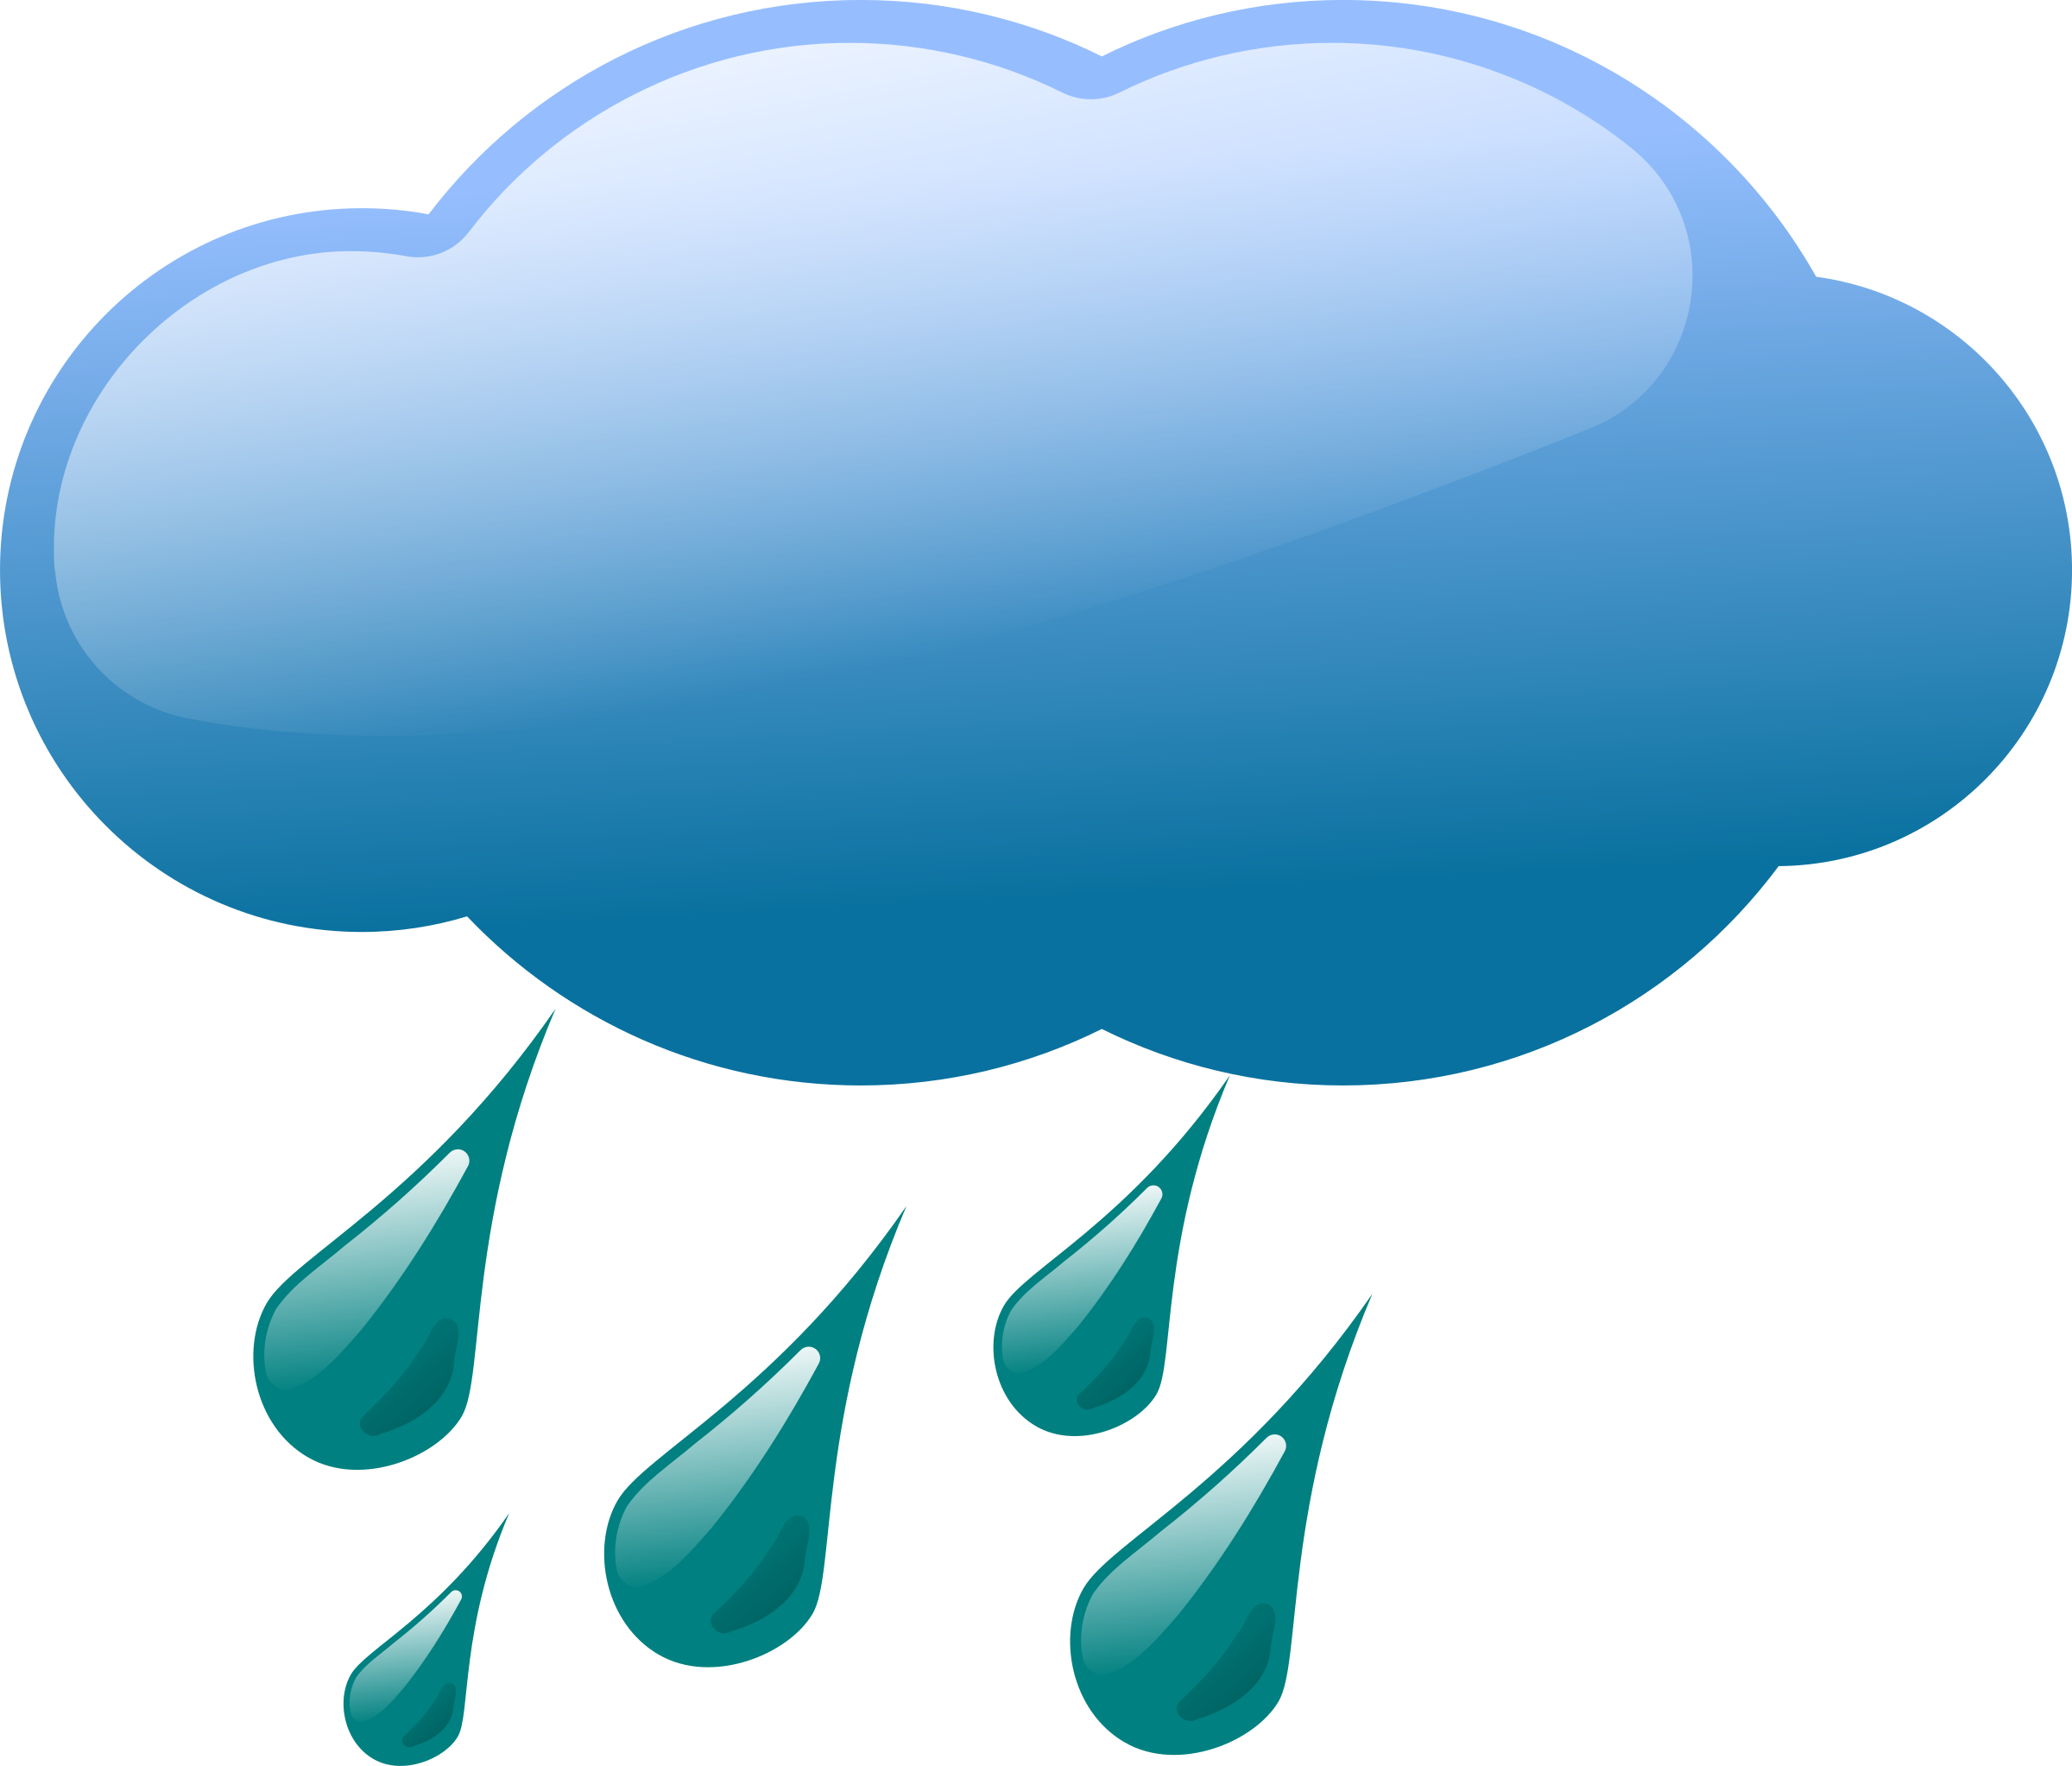 Clipart rain icon, Clipart rain icon Transparent FREE for.